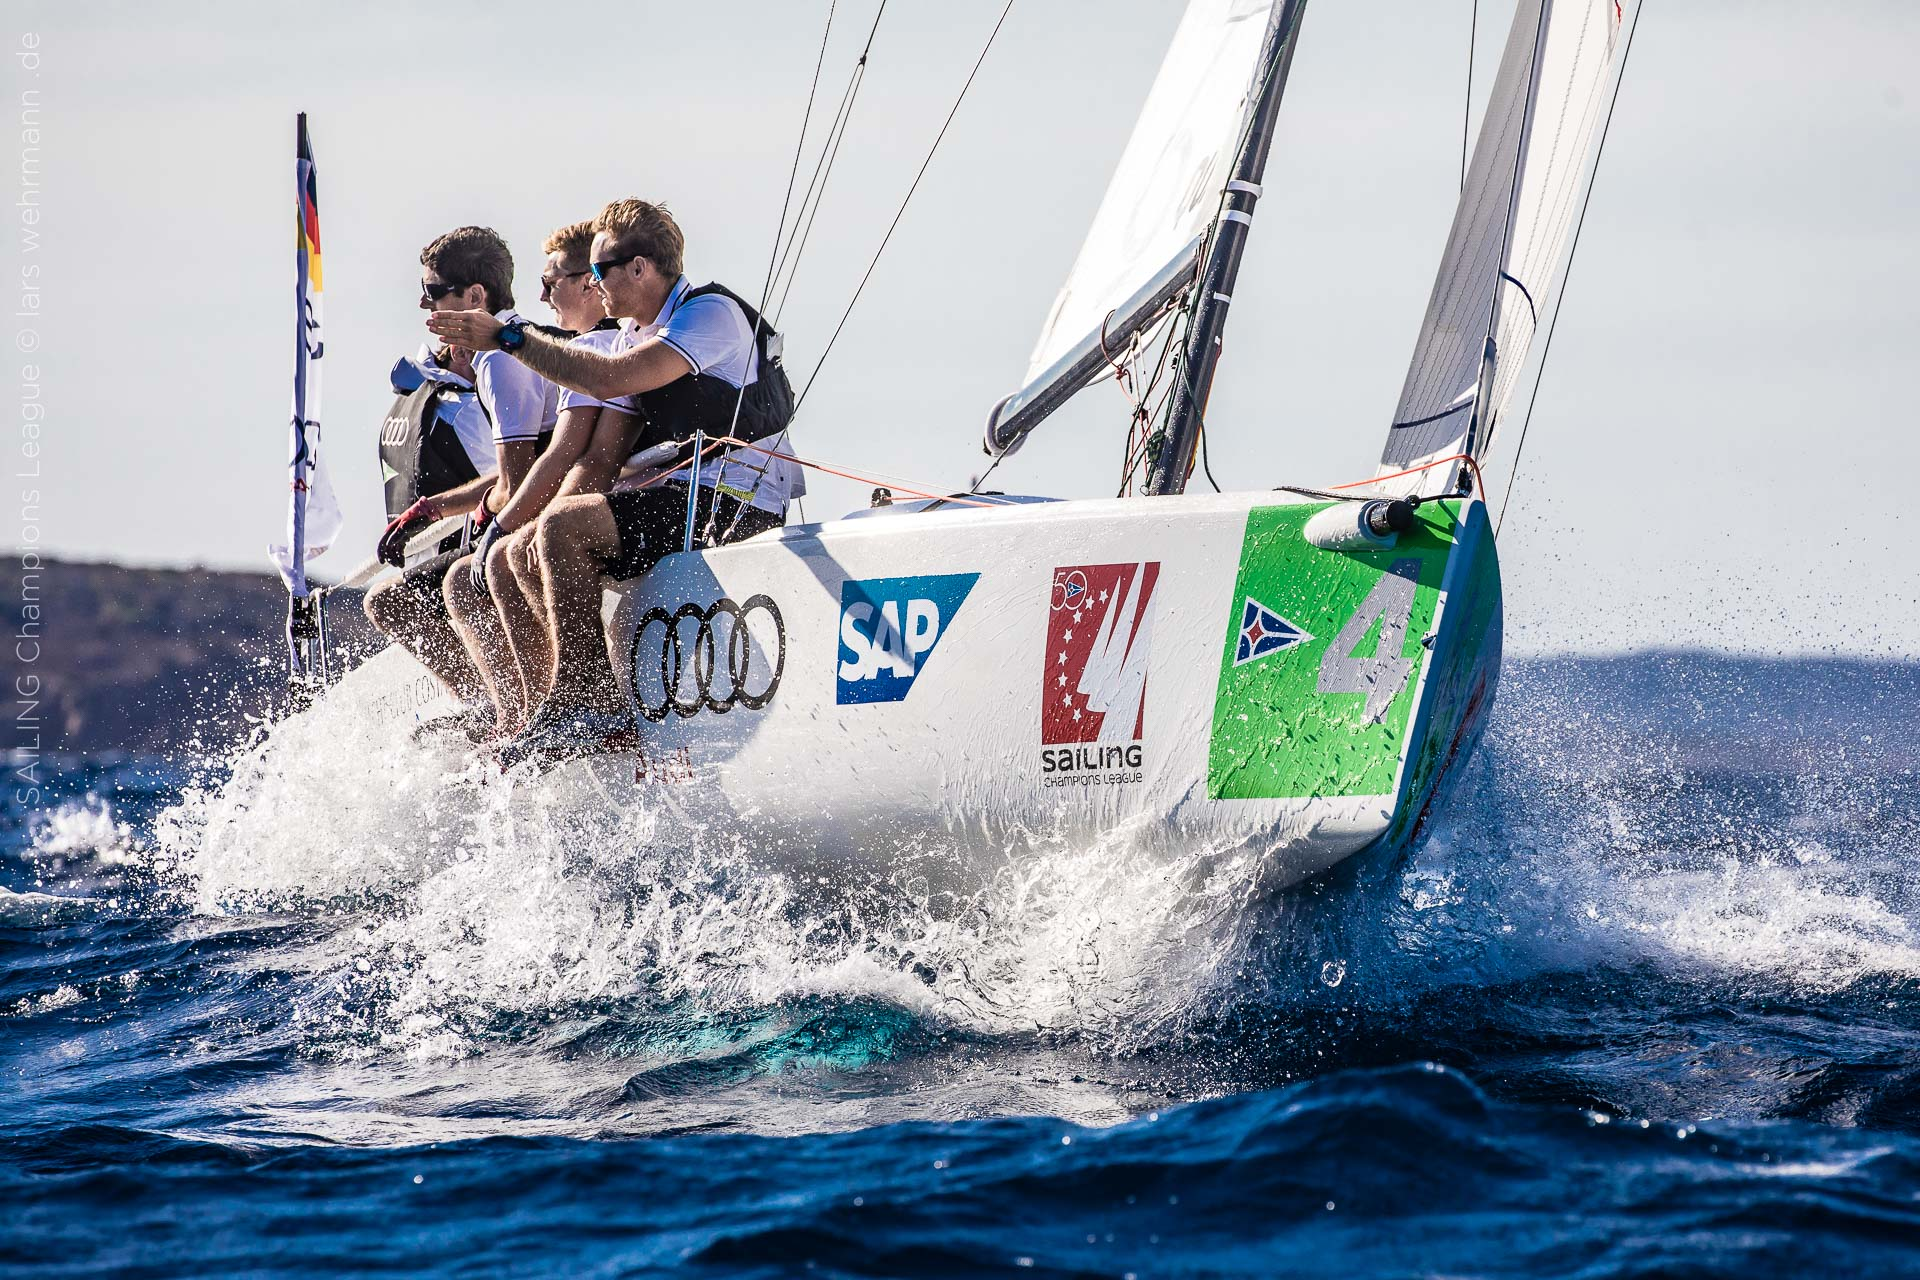 Audi Sailing Champions League Final - Images Race Day 1 online - NEWS - Yacht Club Costa Smeralda